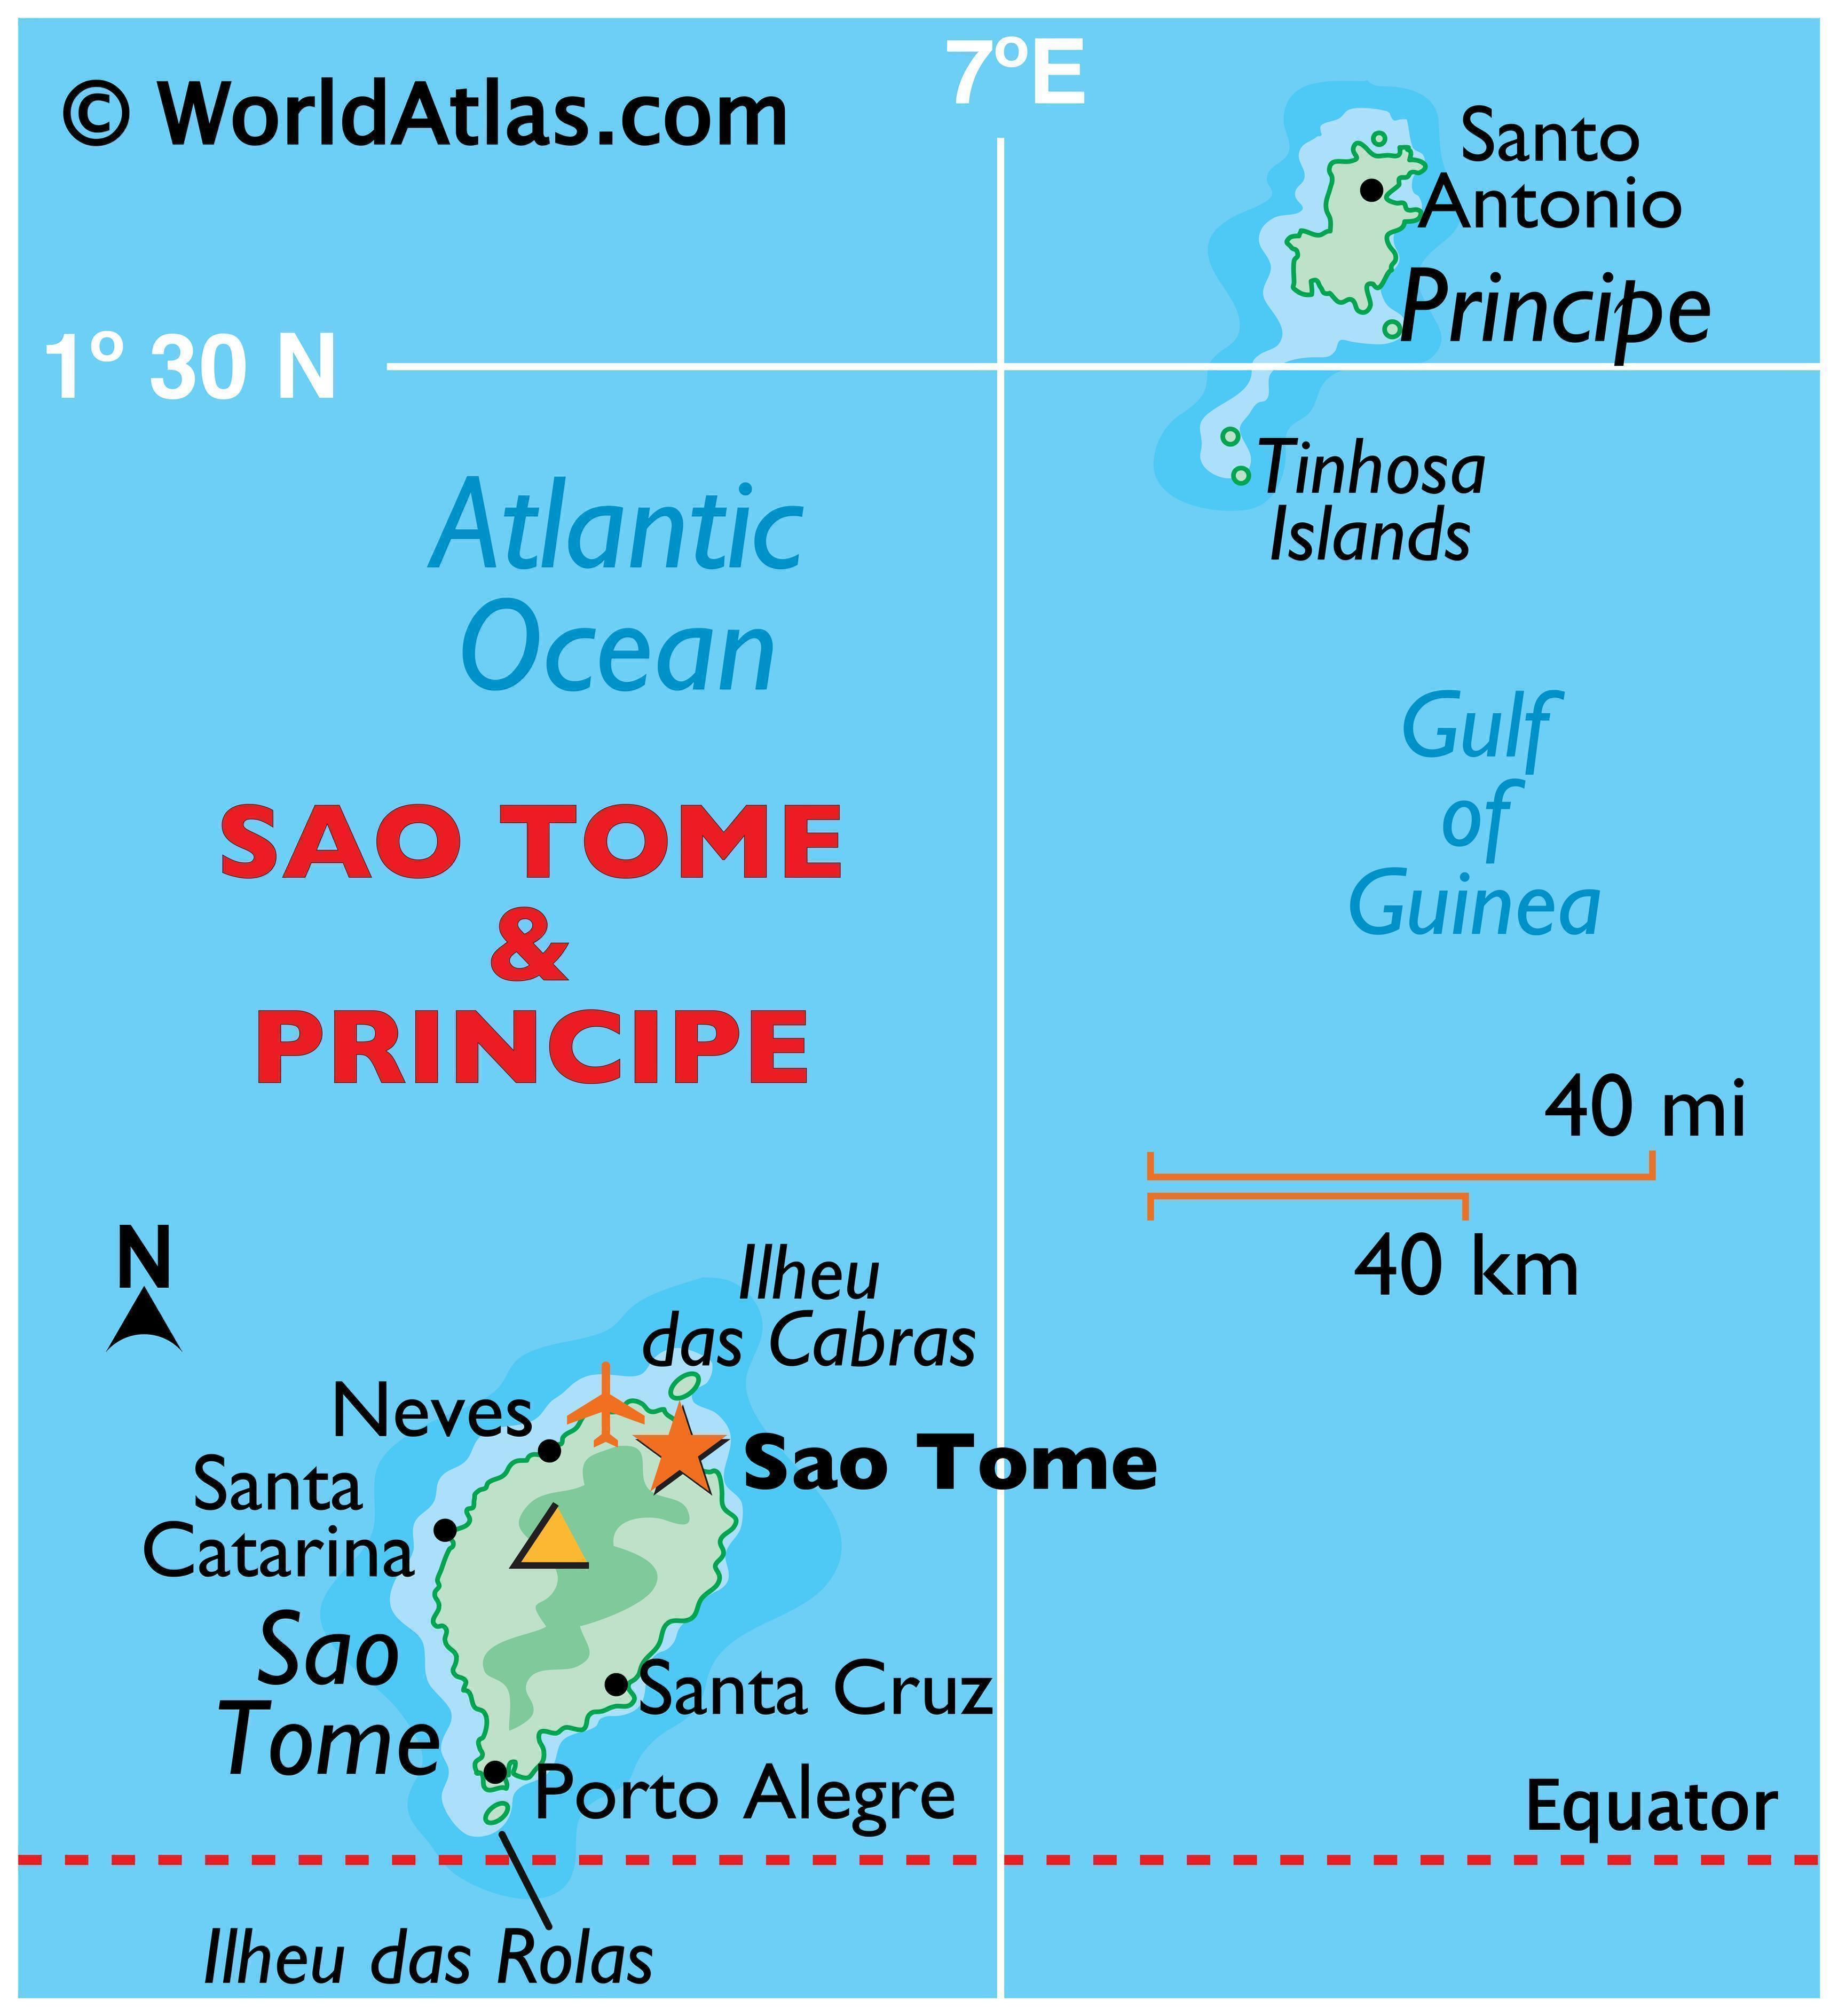 Physical map of Sao Tome and Principe showing its major islands, surrounding water bodies, relief, and relative location of major cities.